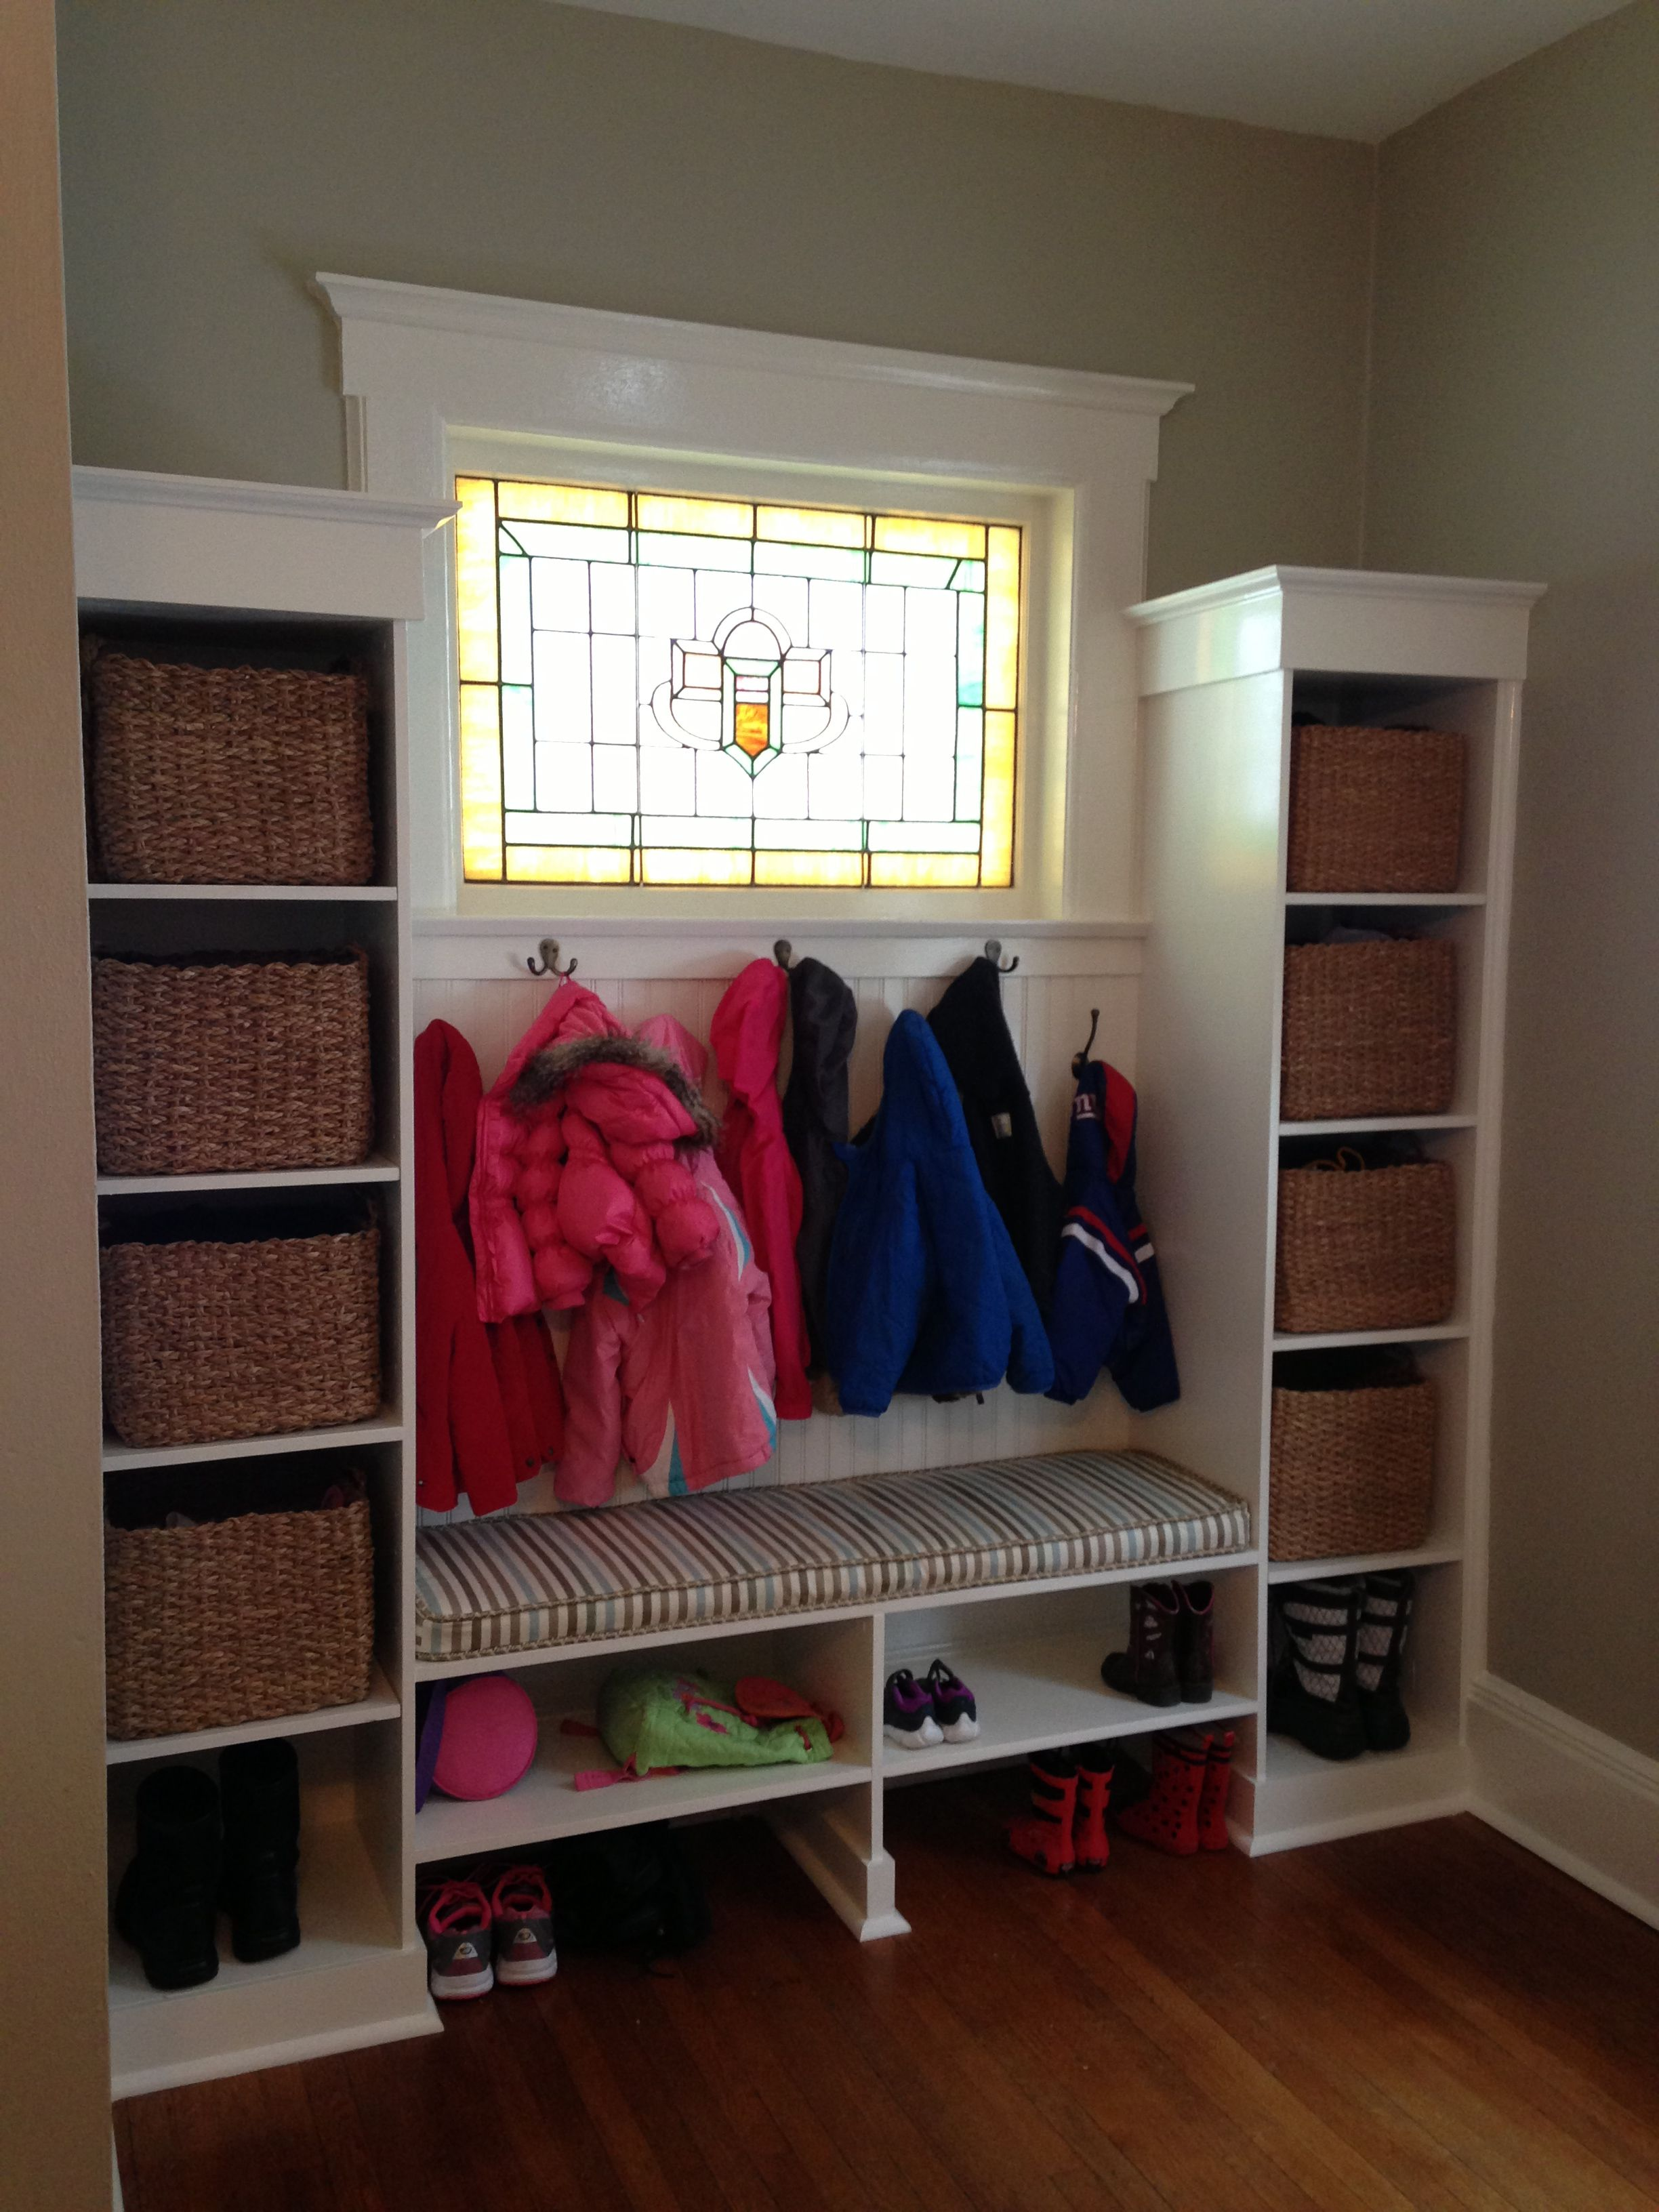 Mudroom Entry Locker System Built Using 2 Pre Fab Side Shelving Units Lots Of Moldings Bead Board Backer Handmade Bench With Lower Shoe Shelf And